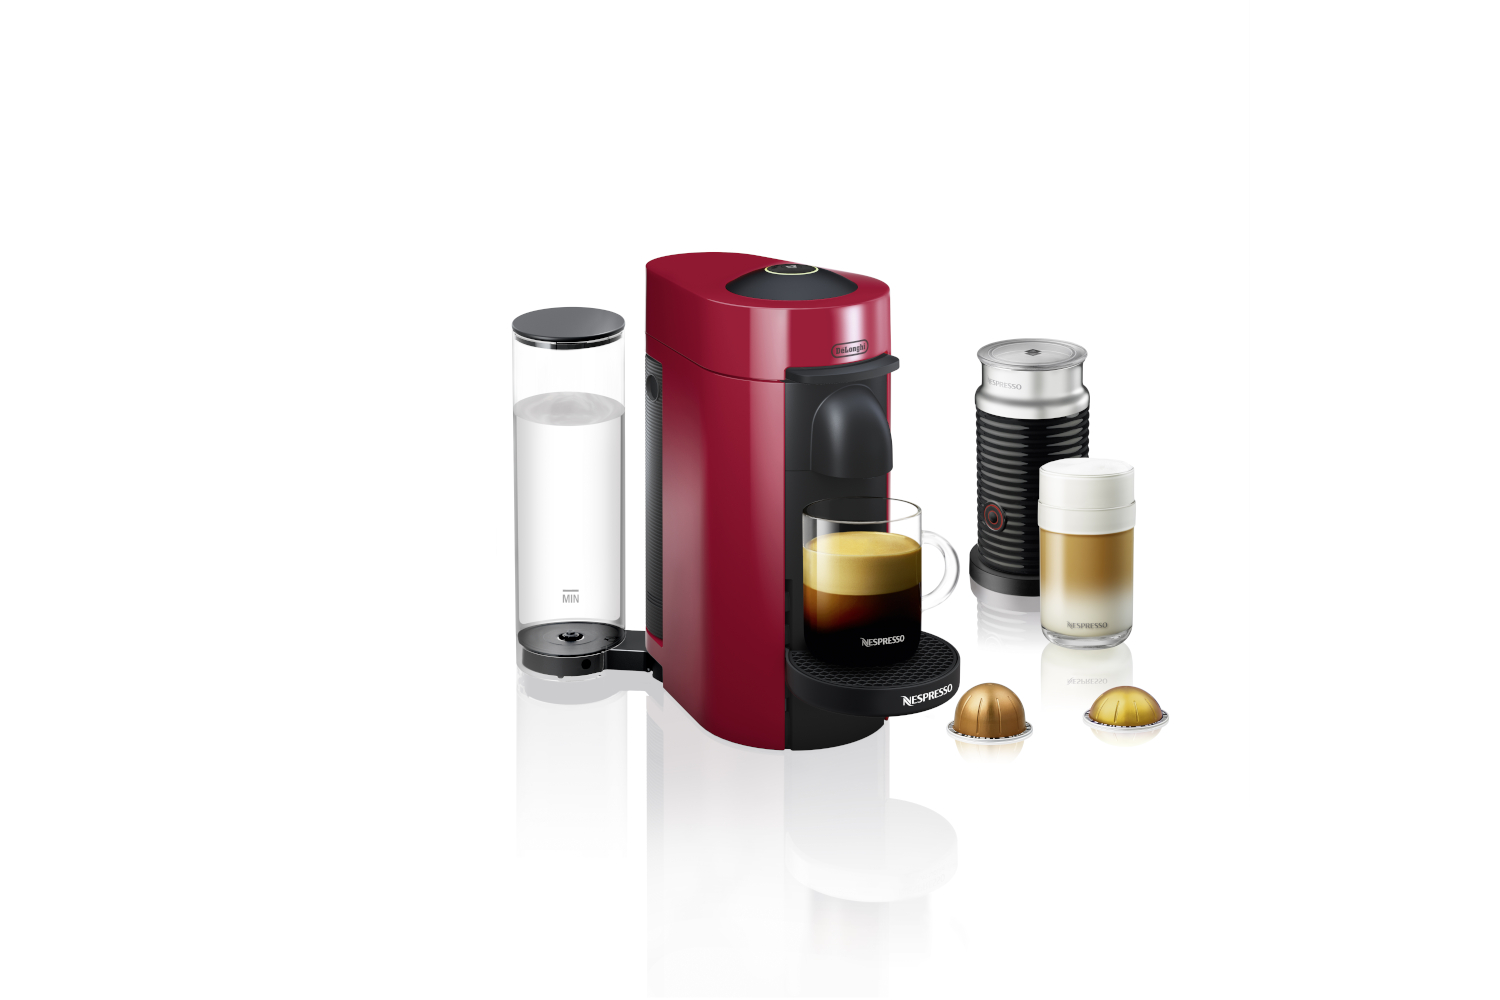 Nespresso VertuoPlus Coffee & Espresso Machine by De'Longhi w/Aeroccino3 - Red